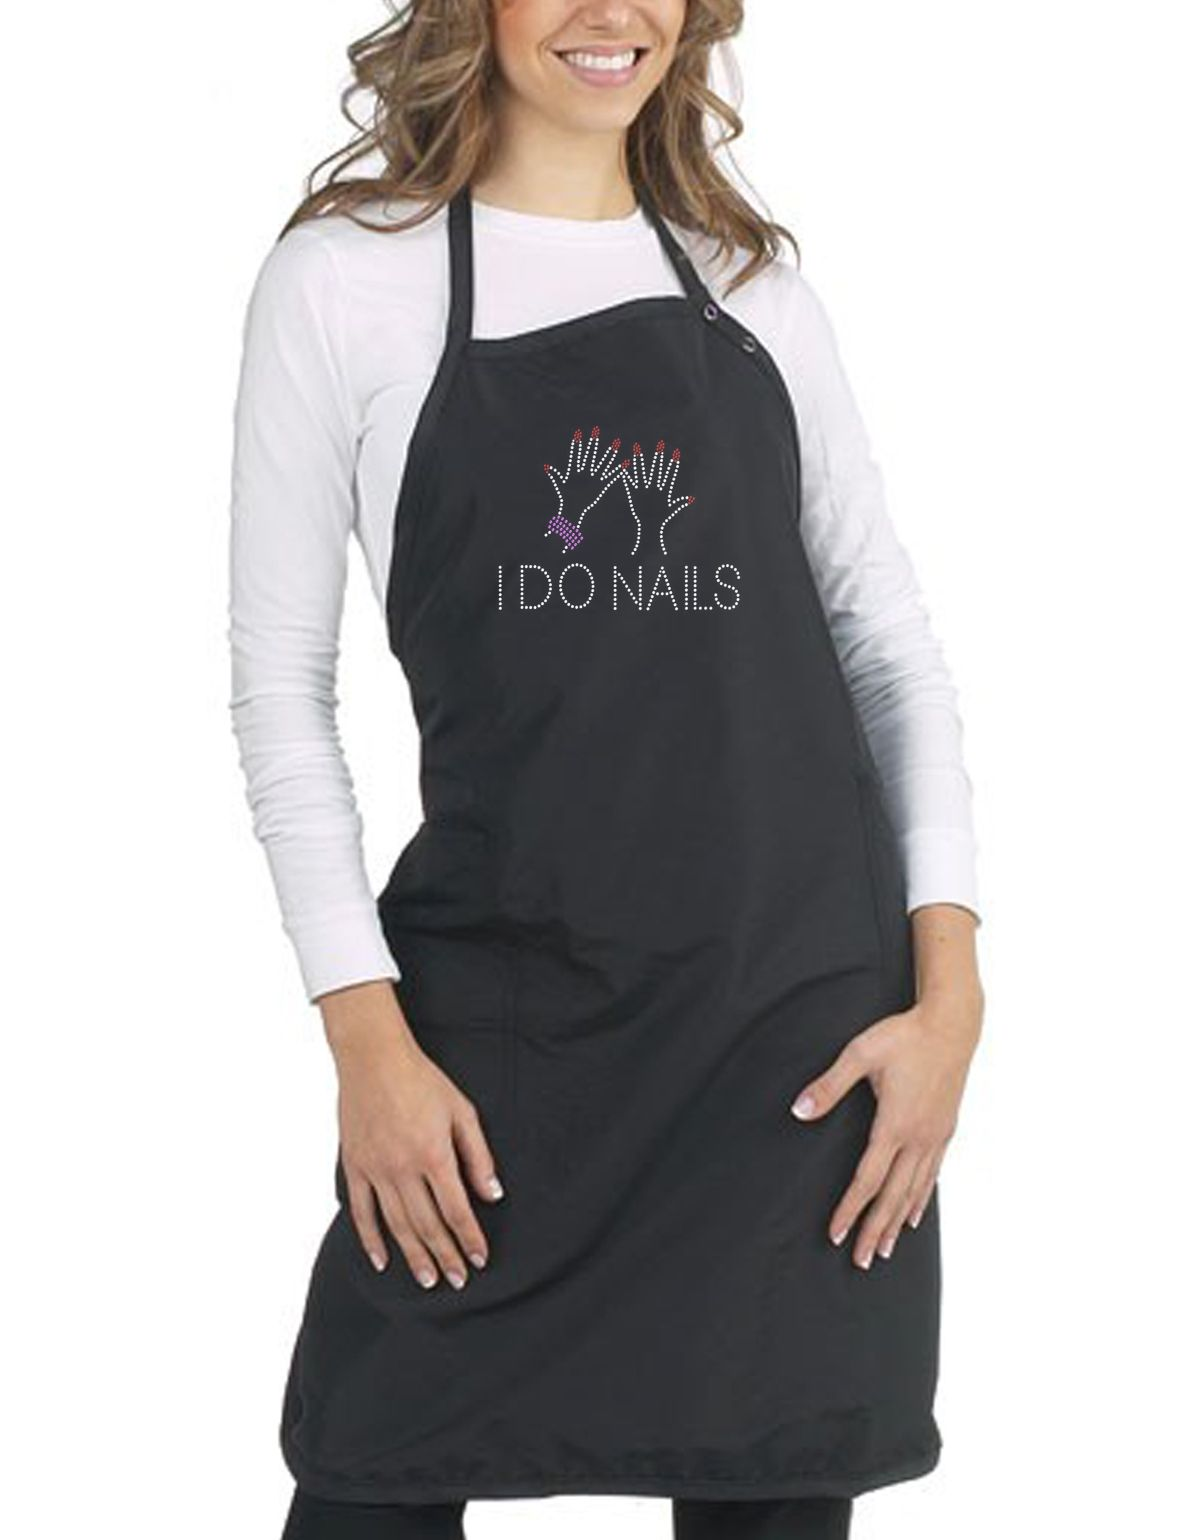 Personalised Apron/Tunic Beauty Therapists, Hairdresser